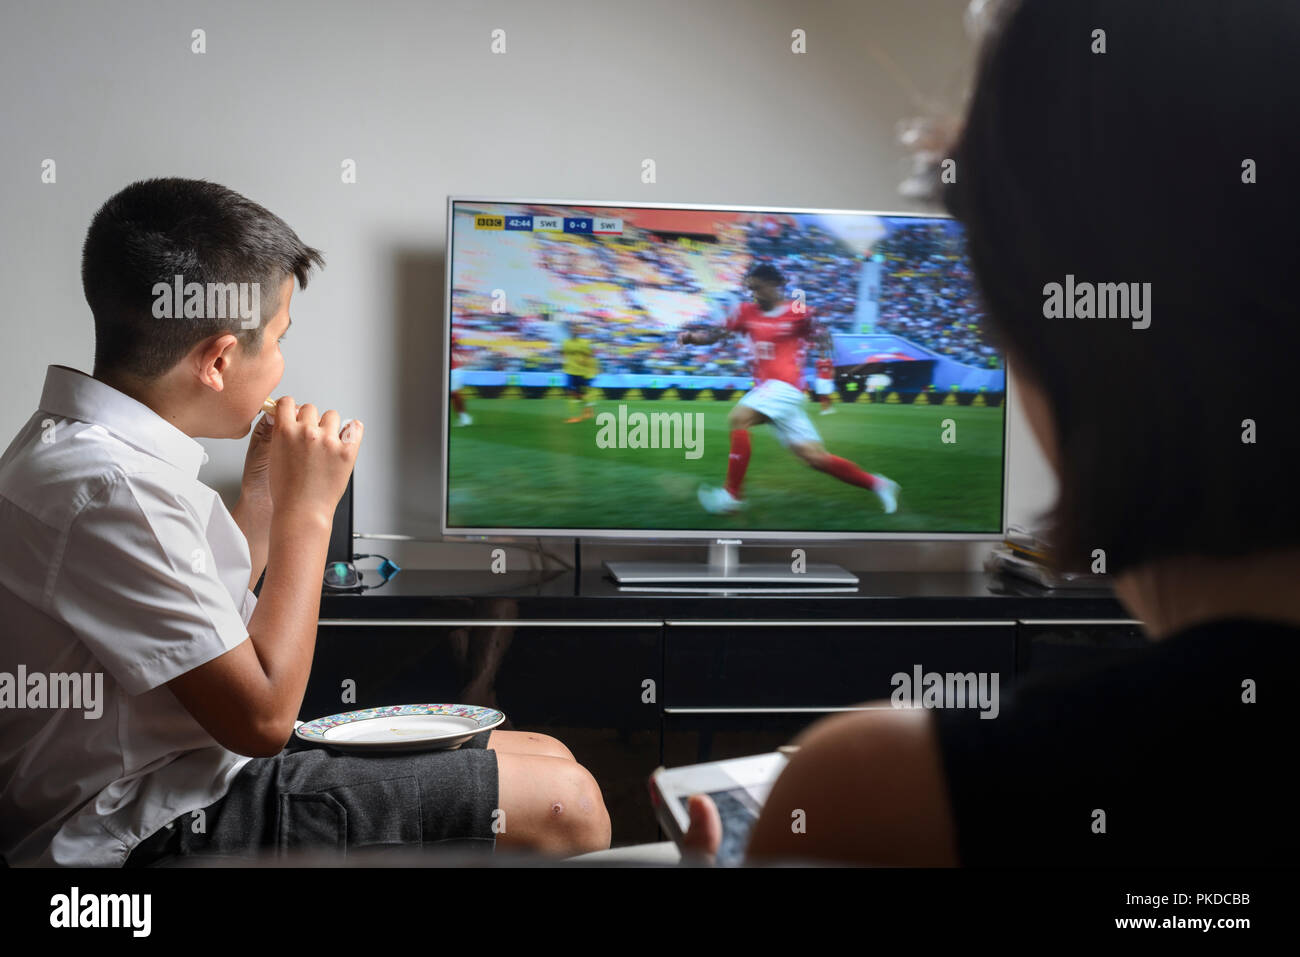 Schoolboy 10 years old,in school uniform snacking and watching football match on TV - Stock Image